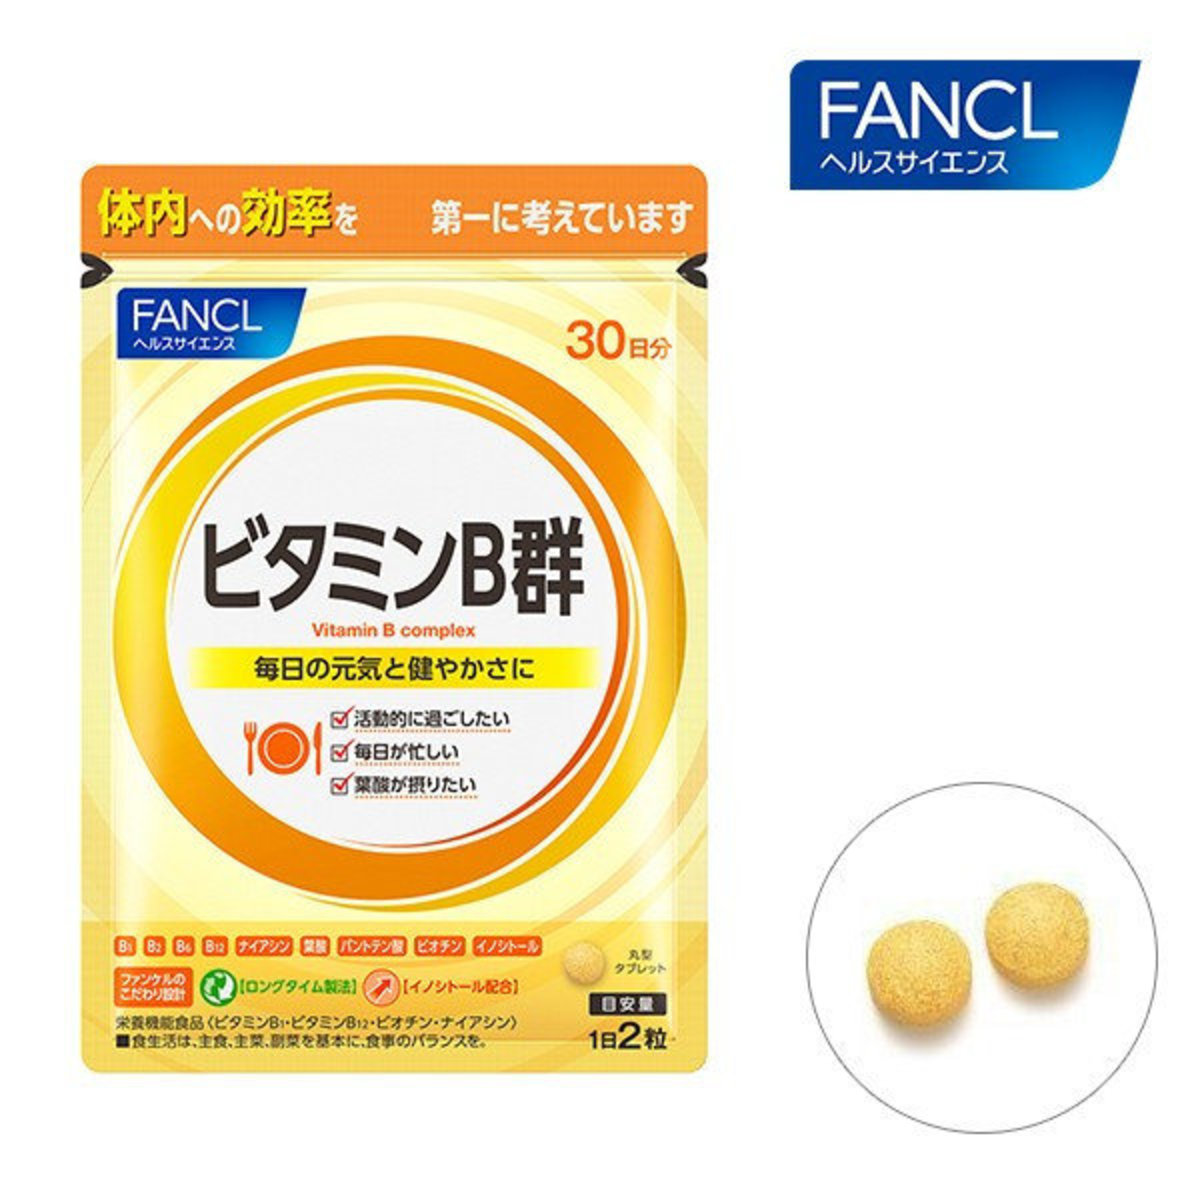 Fancl Vitamin B Mixed (60 tablets 30days) (Parallel Import)